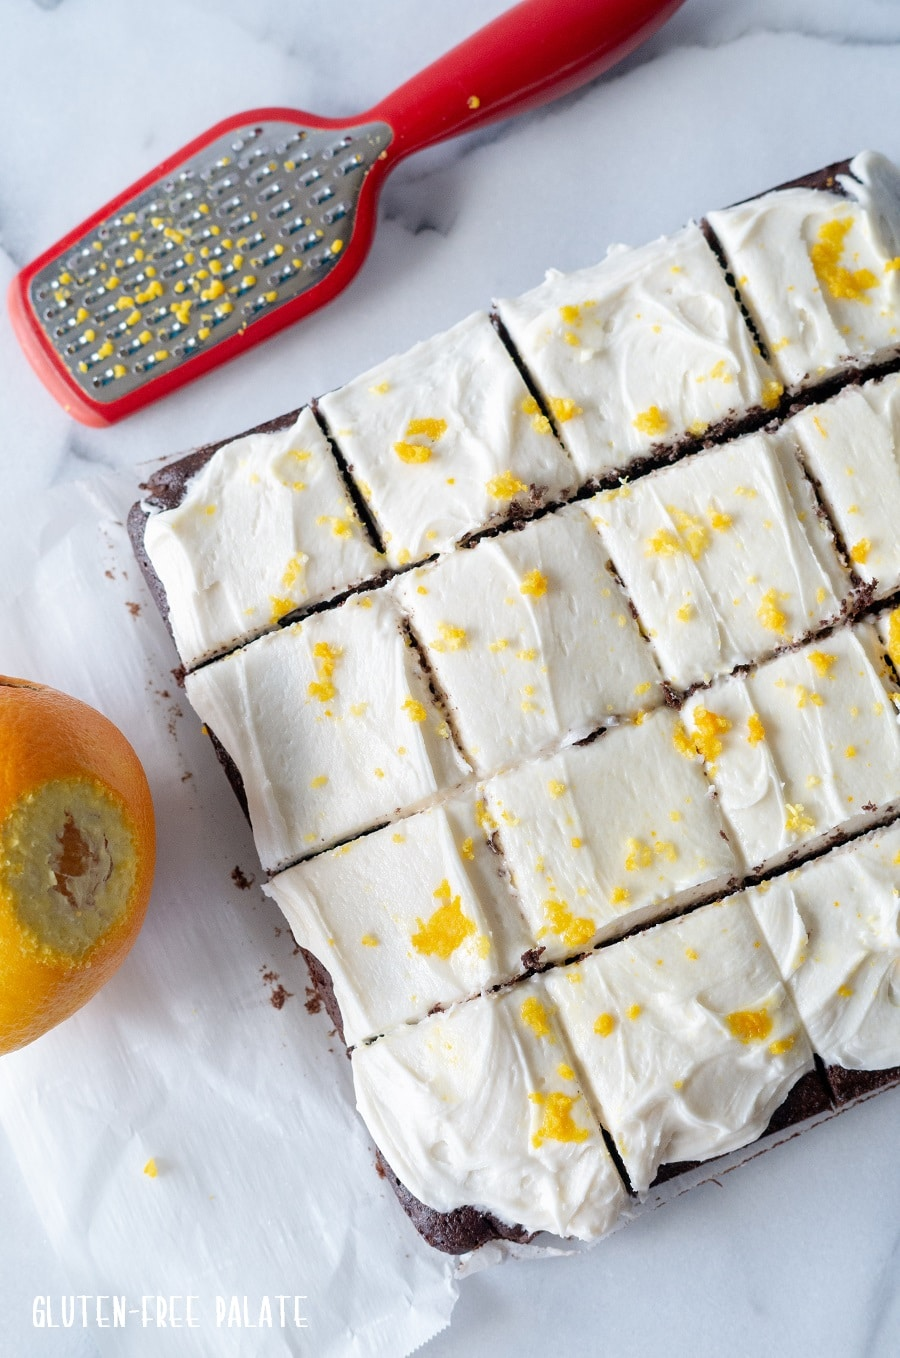 a top down view of brownies with white frosting and orange zest on top, cut into squares